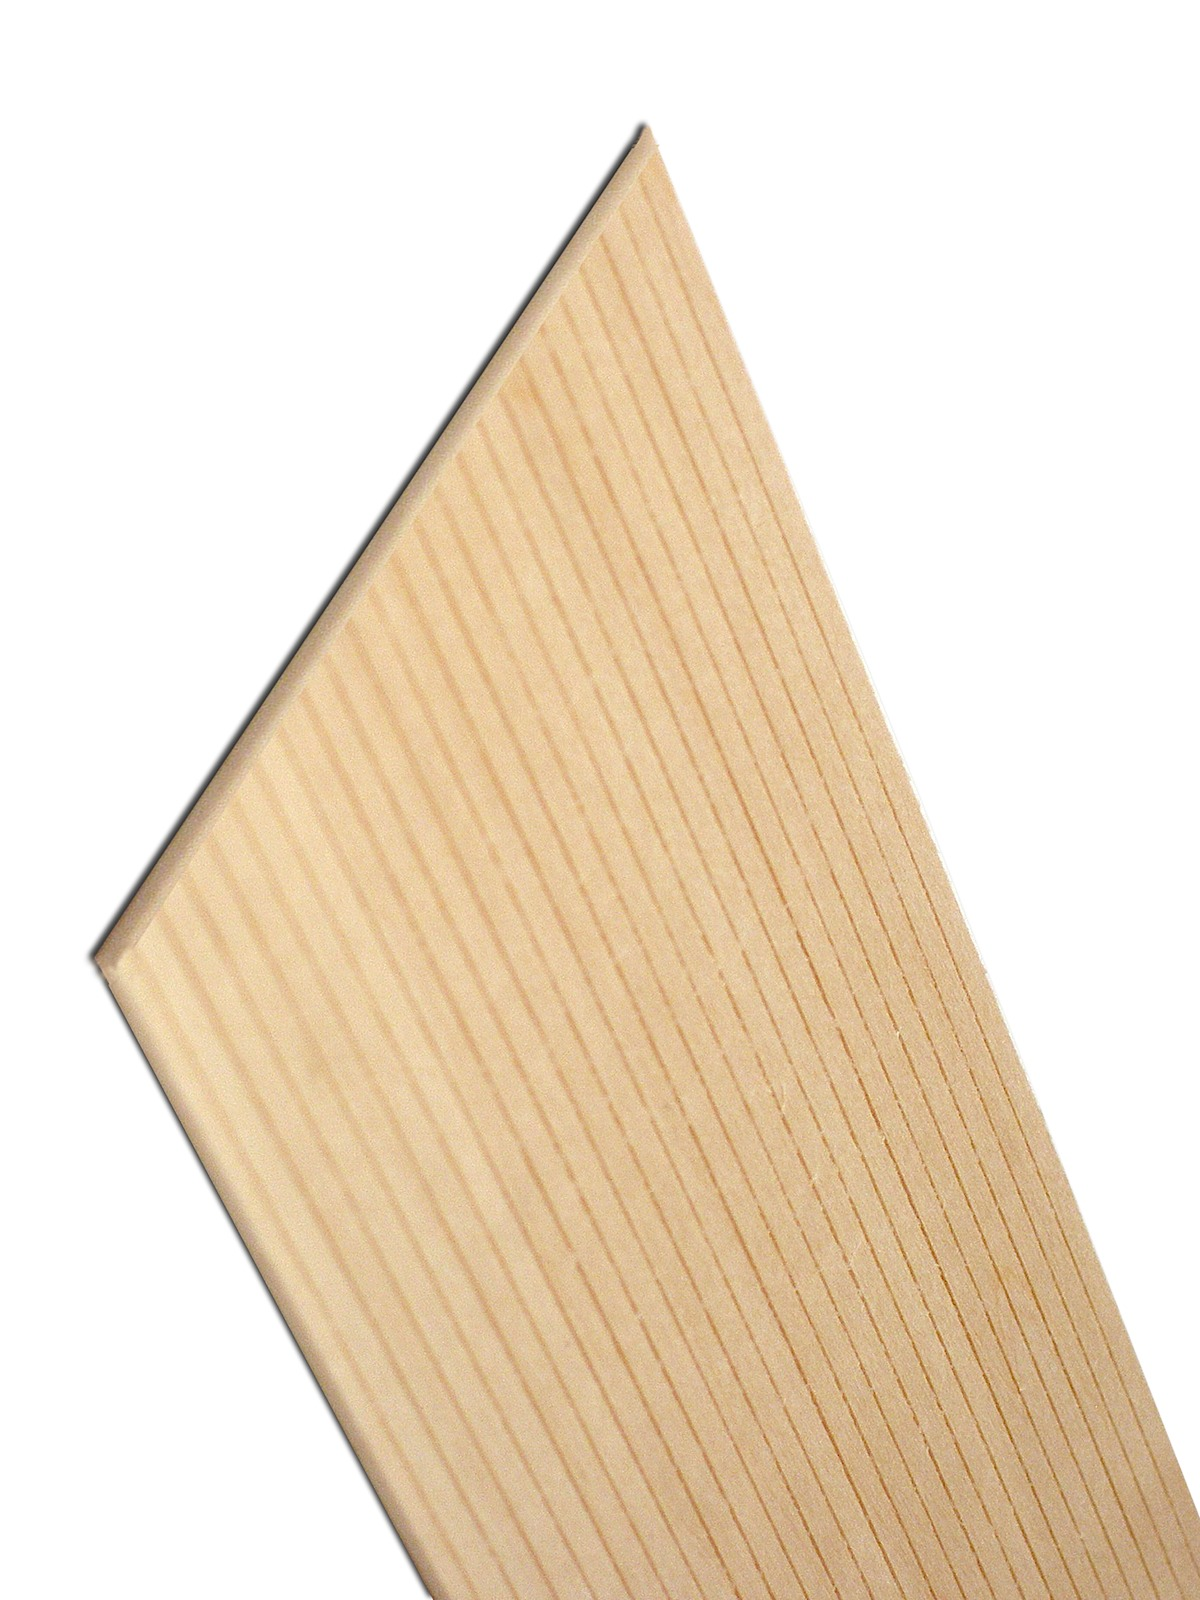 Basswood Scribed Sheathing/Flooring